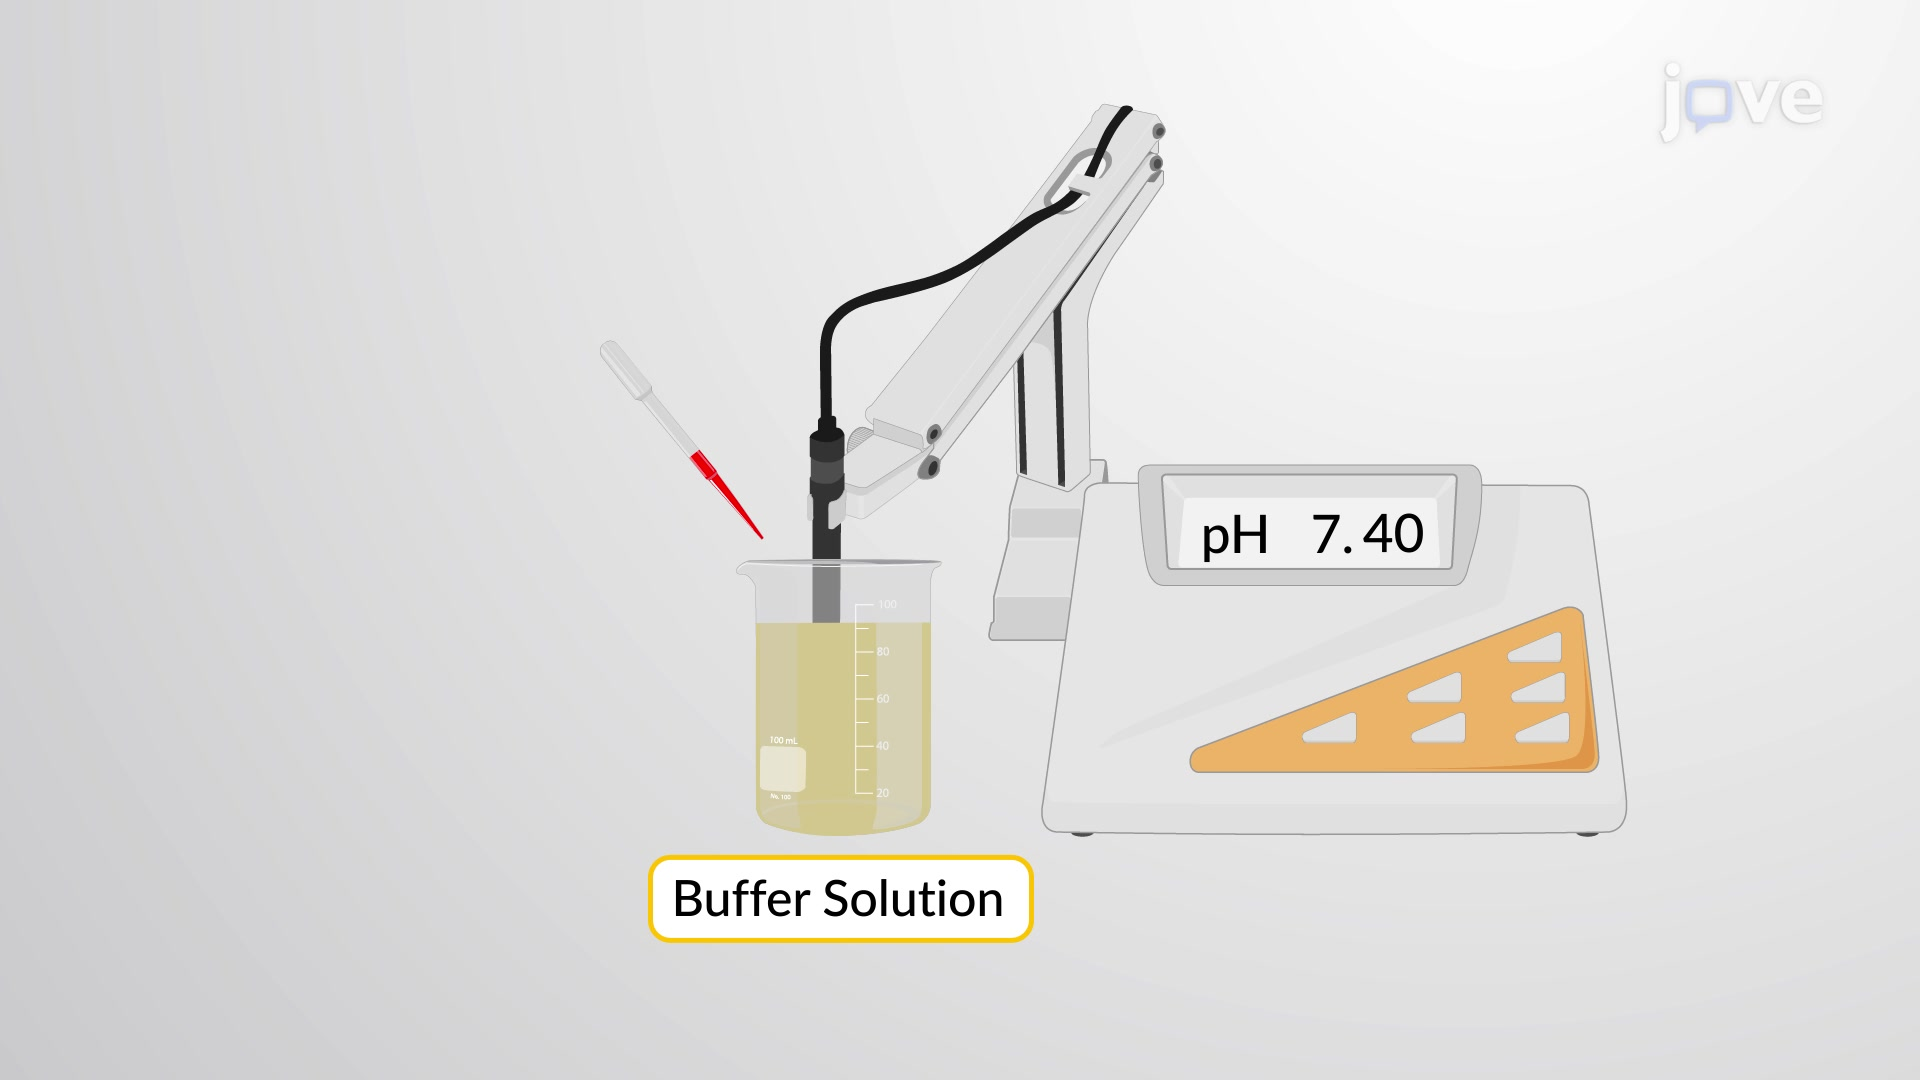 Calculating pH Changes in a Buffer Solution